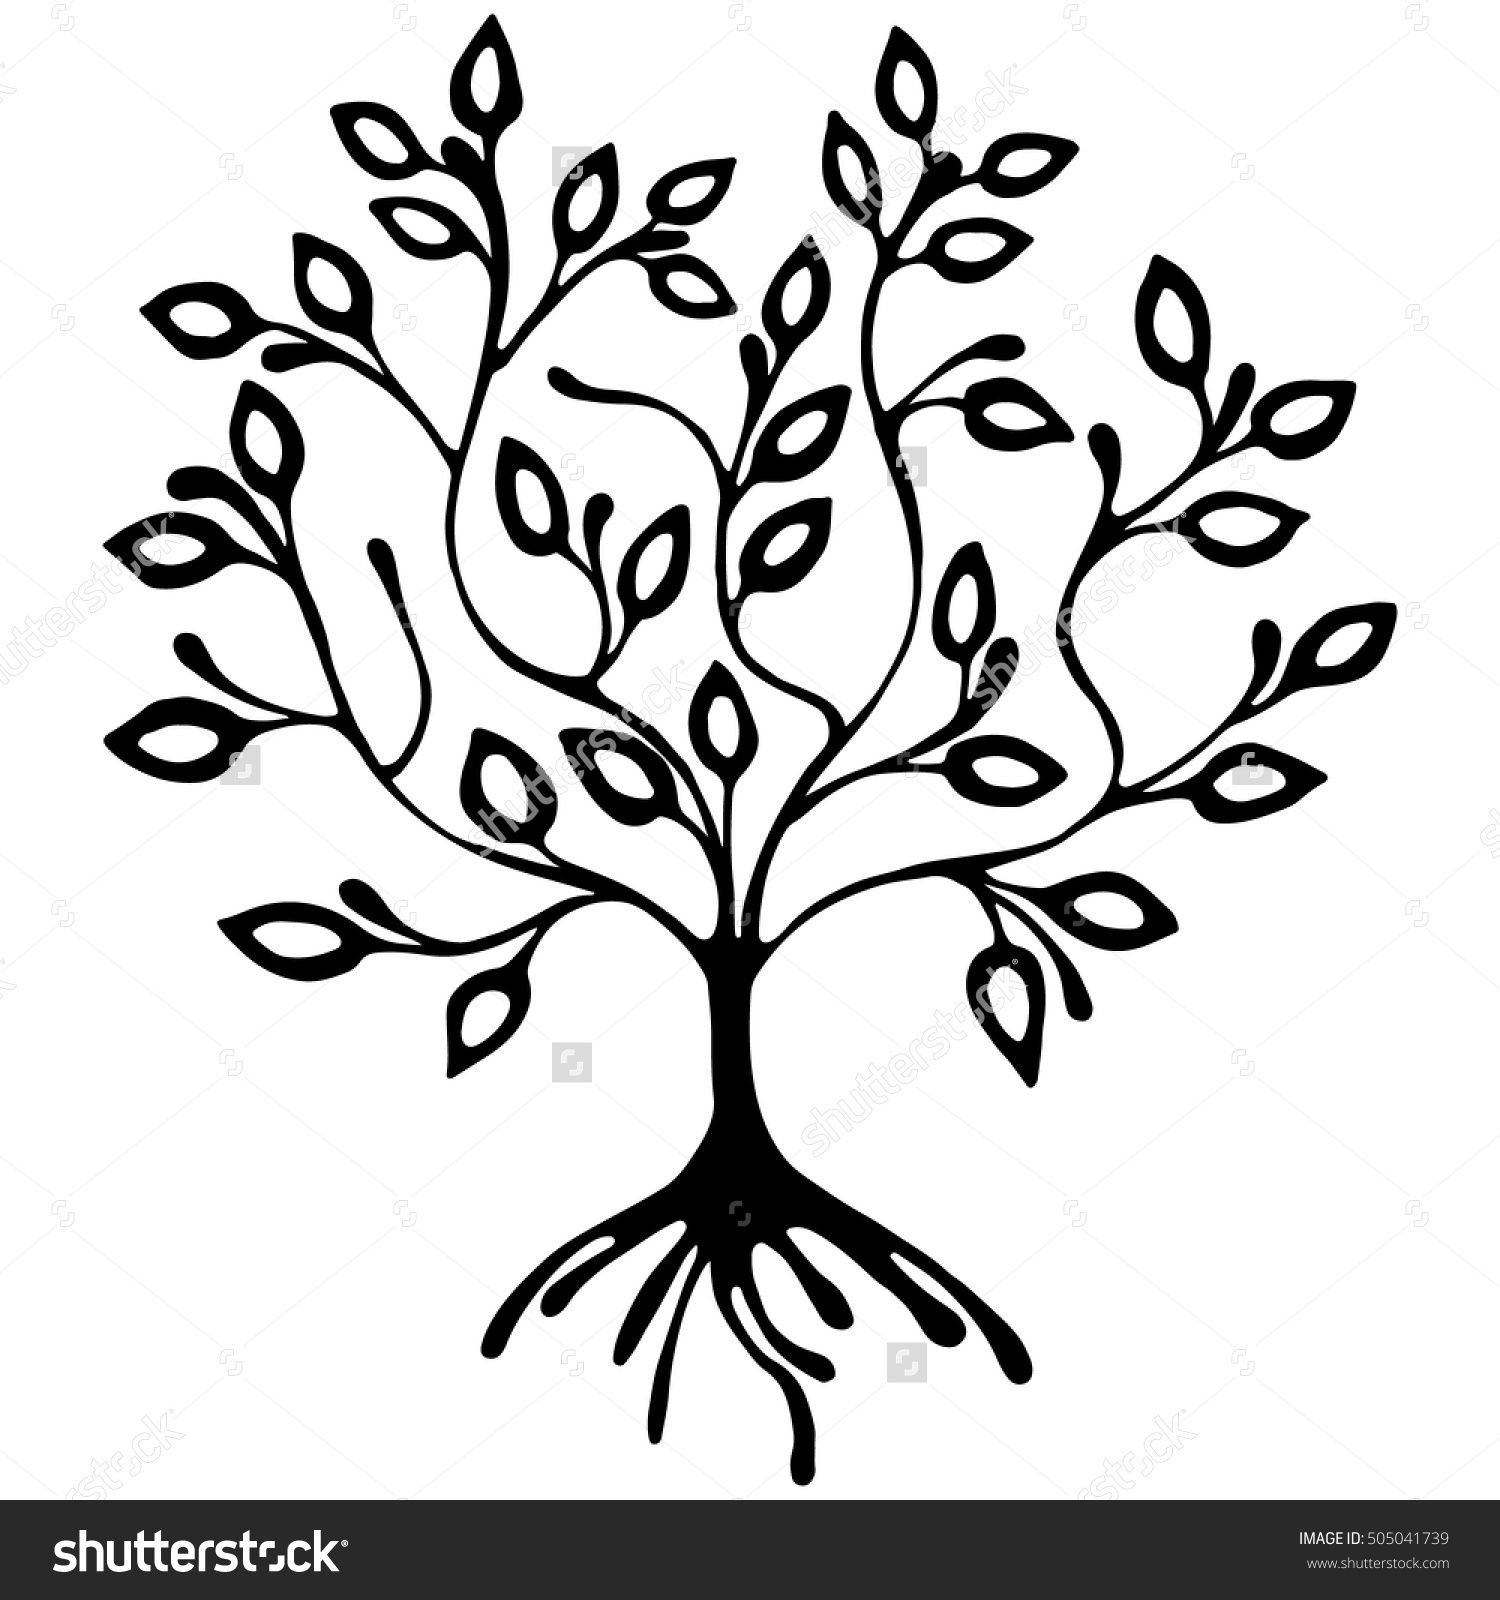 Vector hand drawn illustration decorative ornamental stylized tree